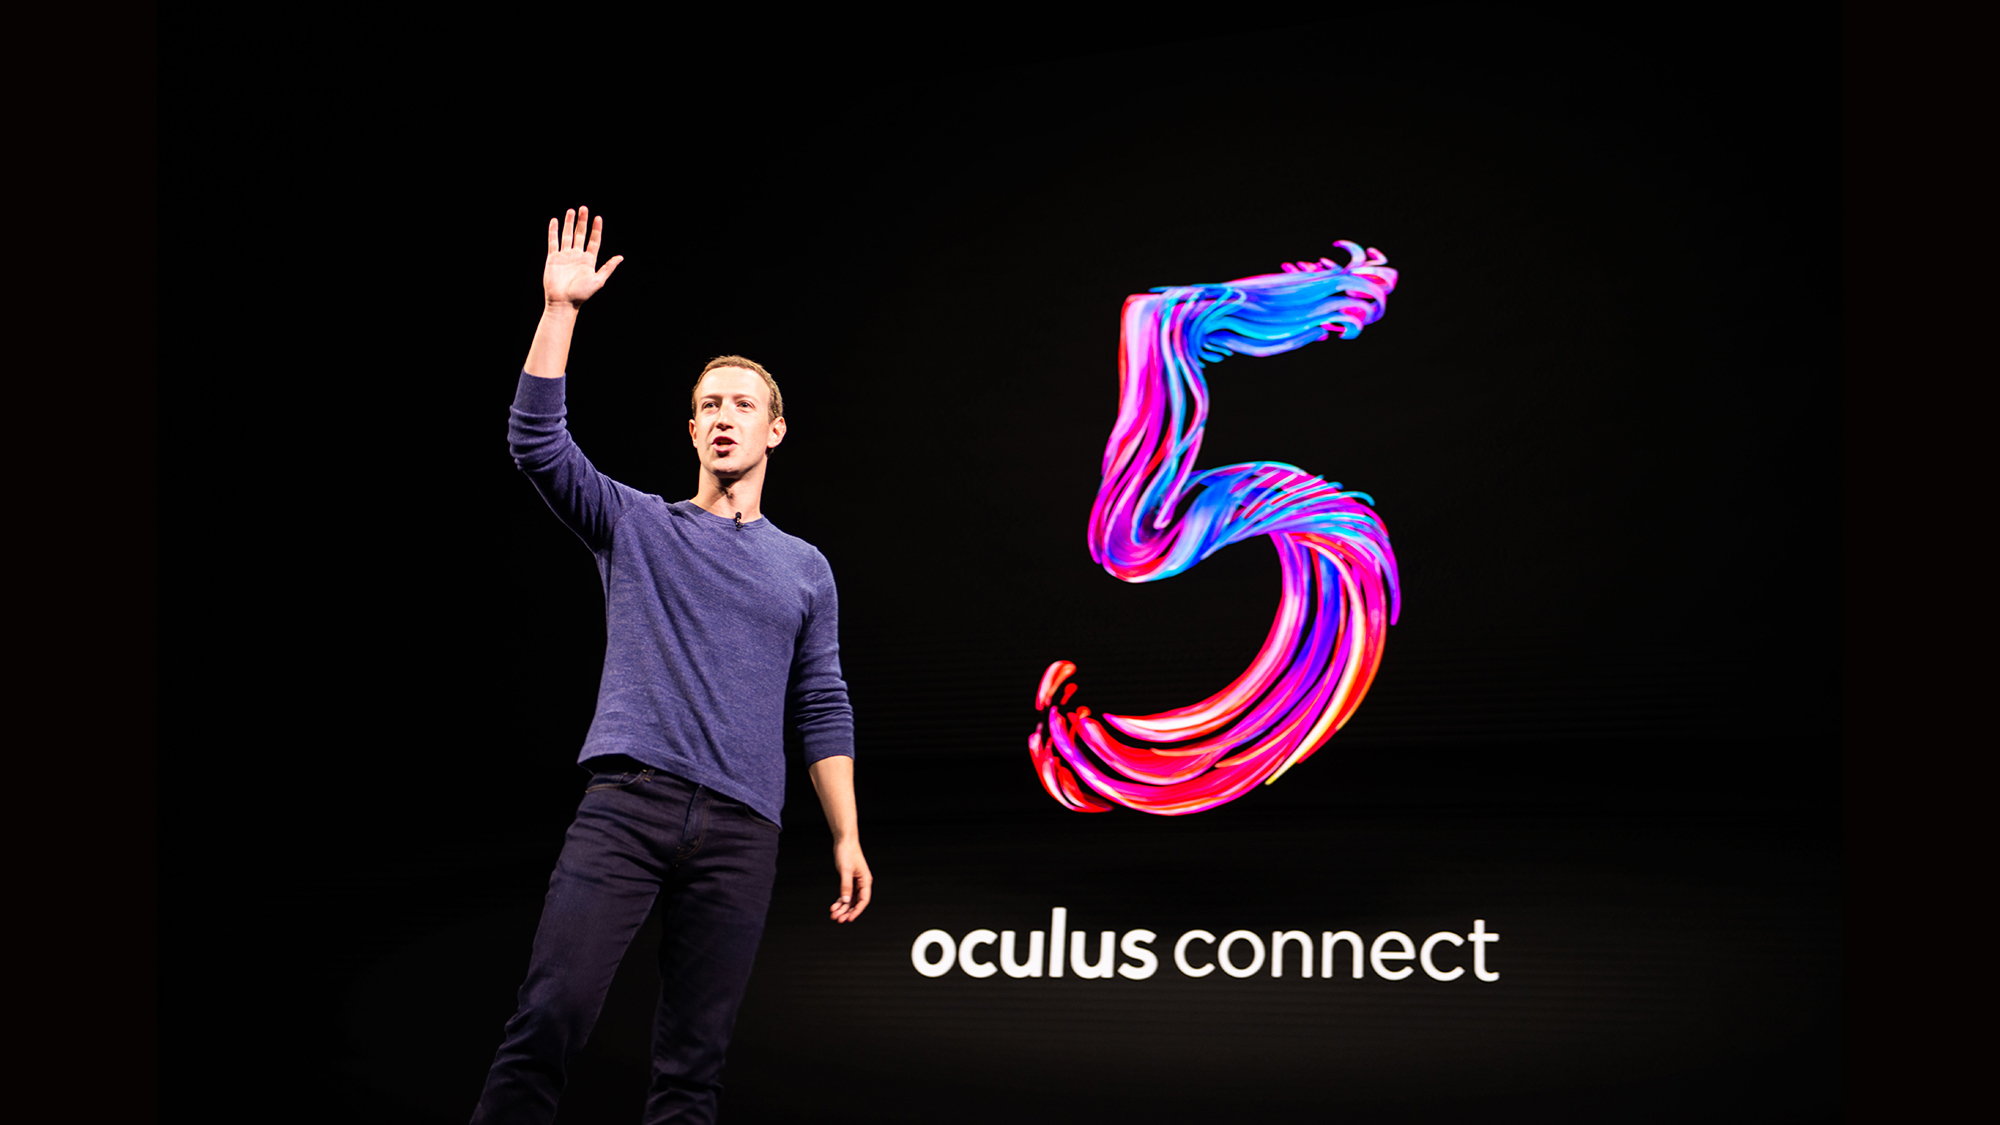 Oculus Connect 5: Tech talks roundup on engineering.fb.com, Facebook's Engineering blog